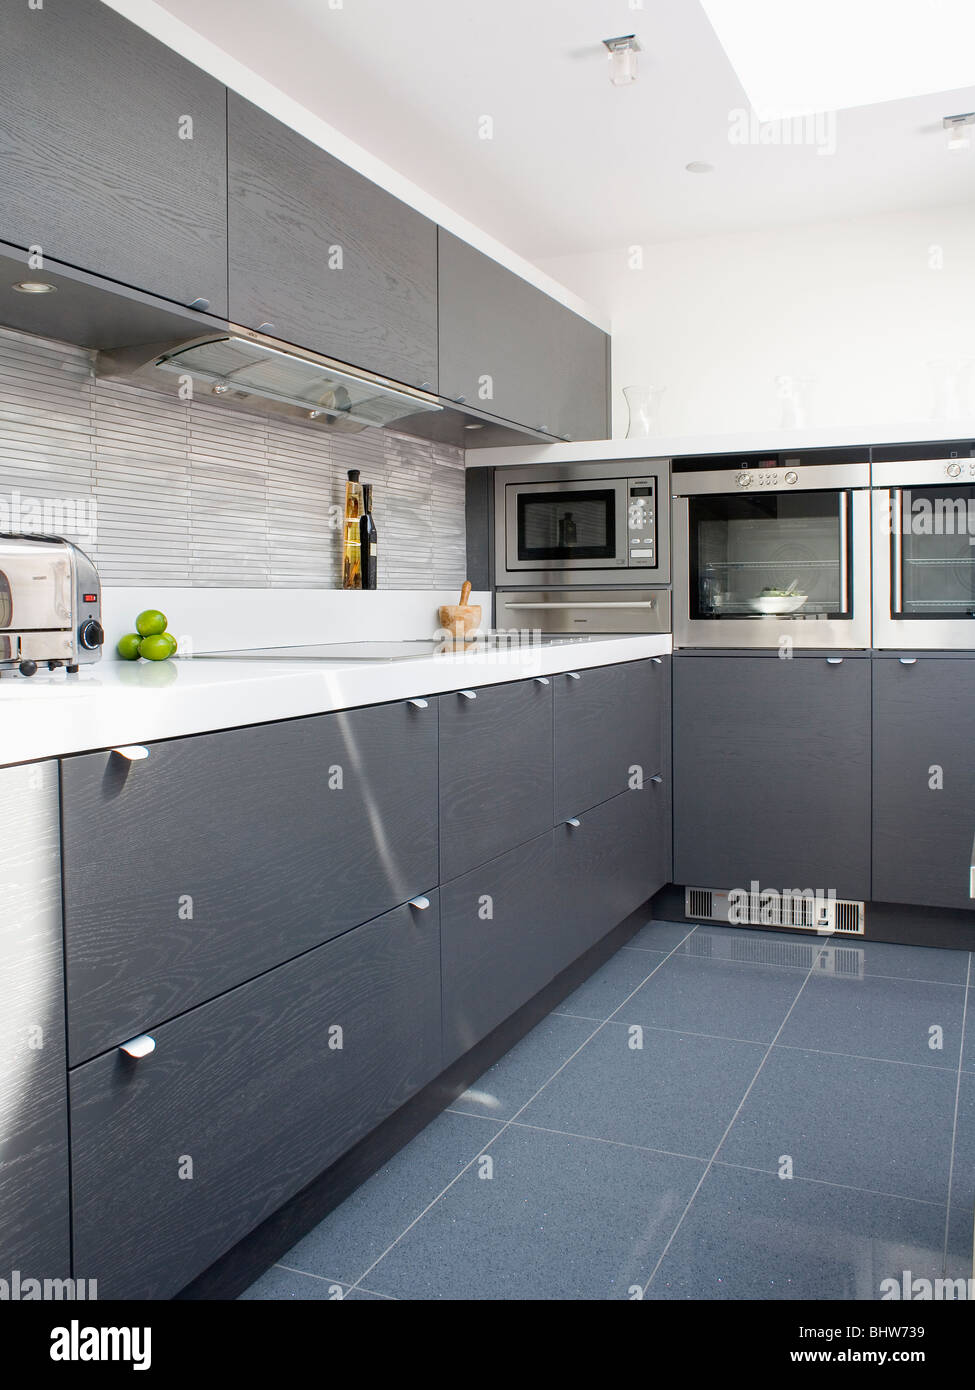 Grey Ceramic Floor Tiles In Modern White Kitchen With Dark Gray - Dark grey kitchen units